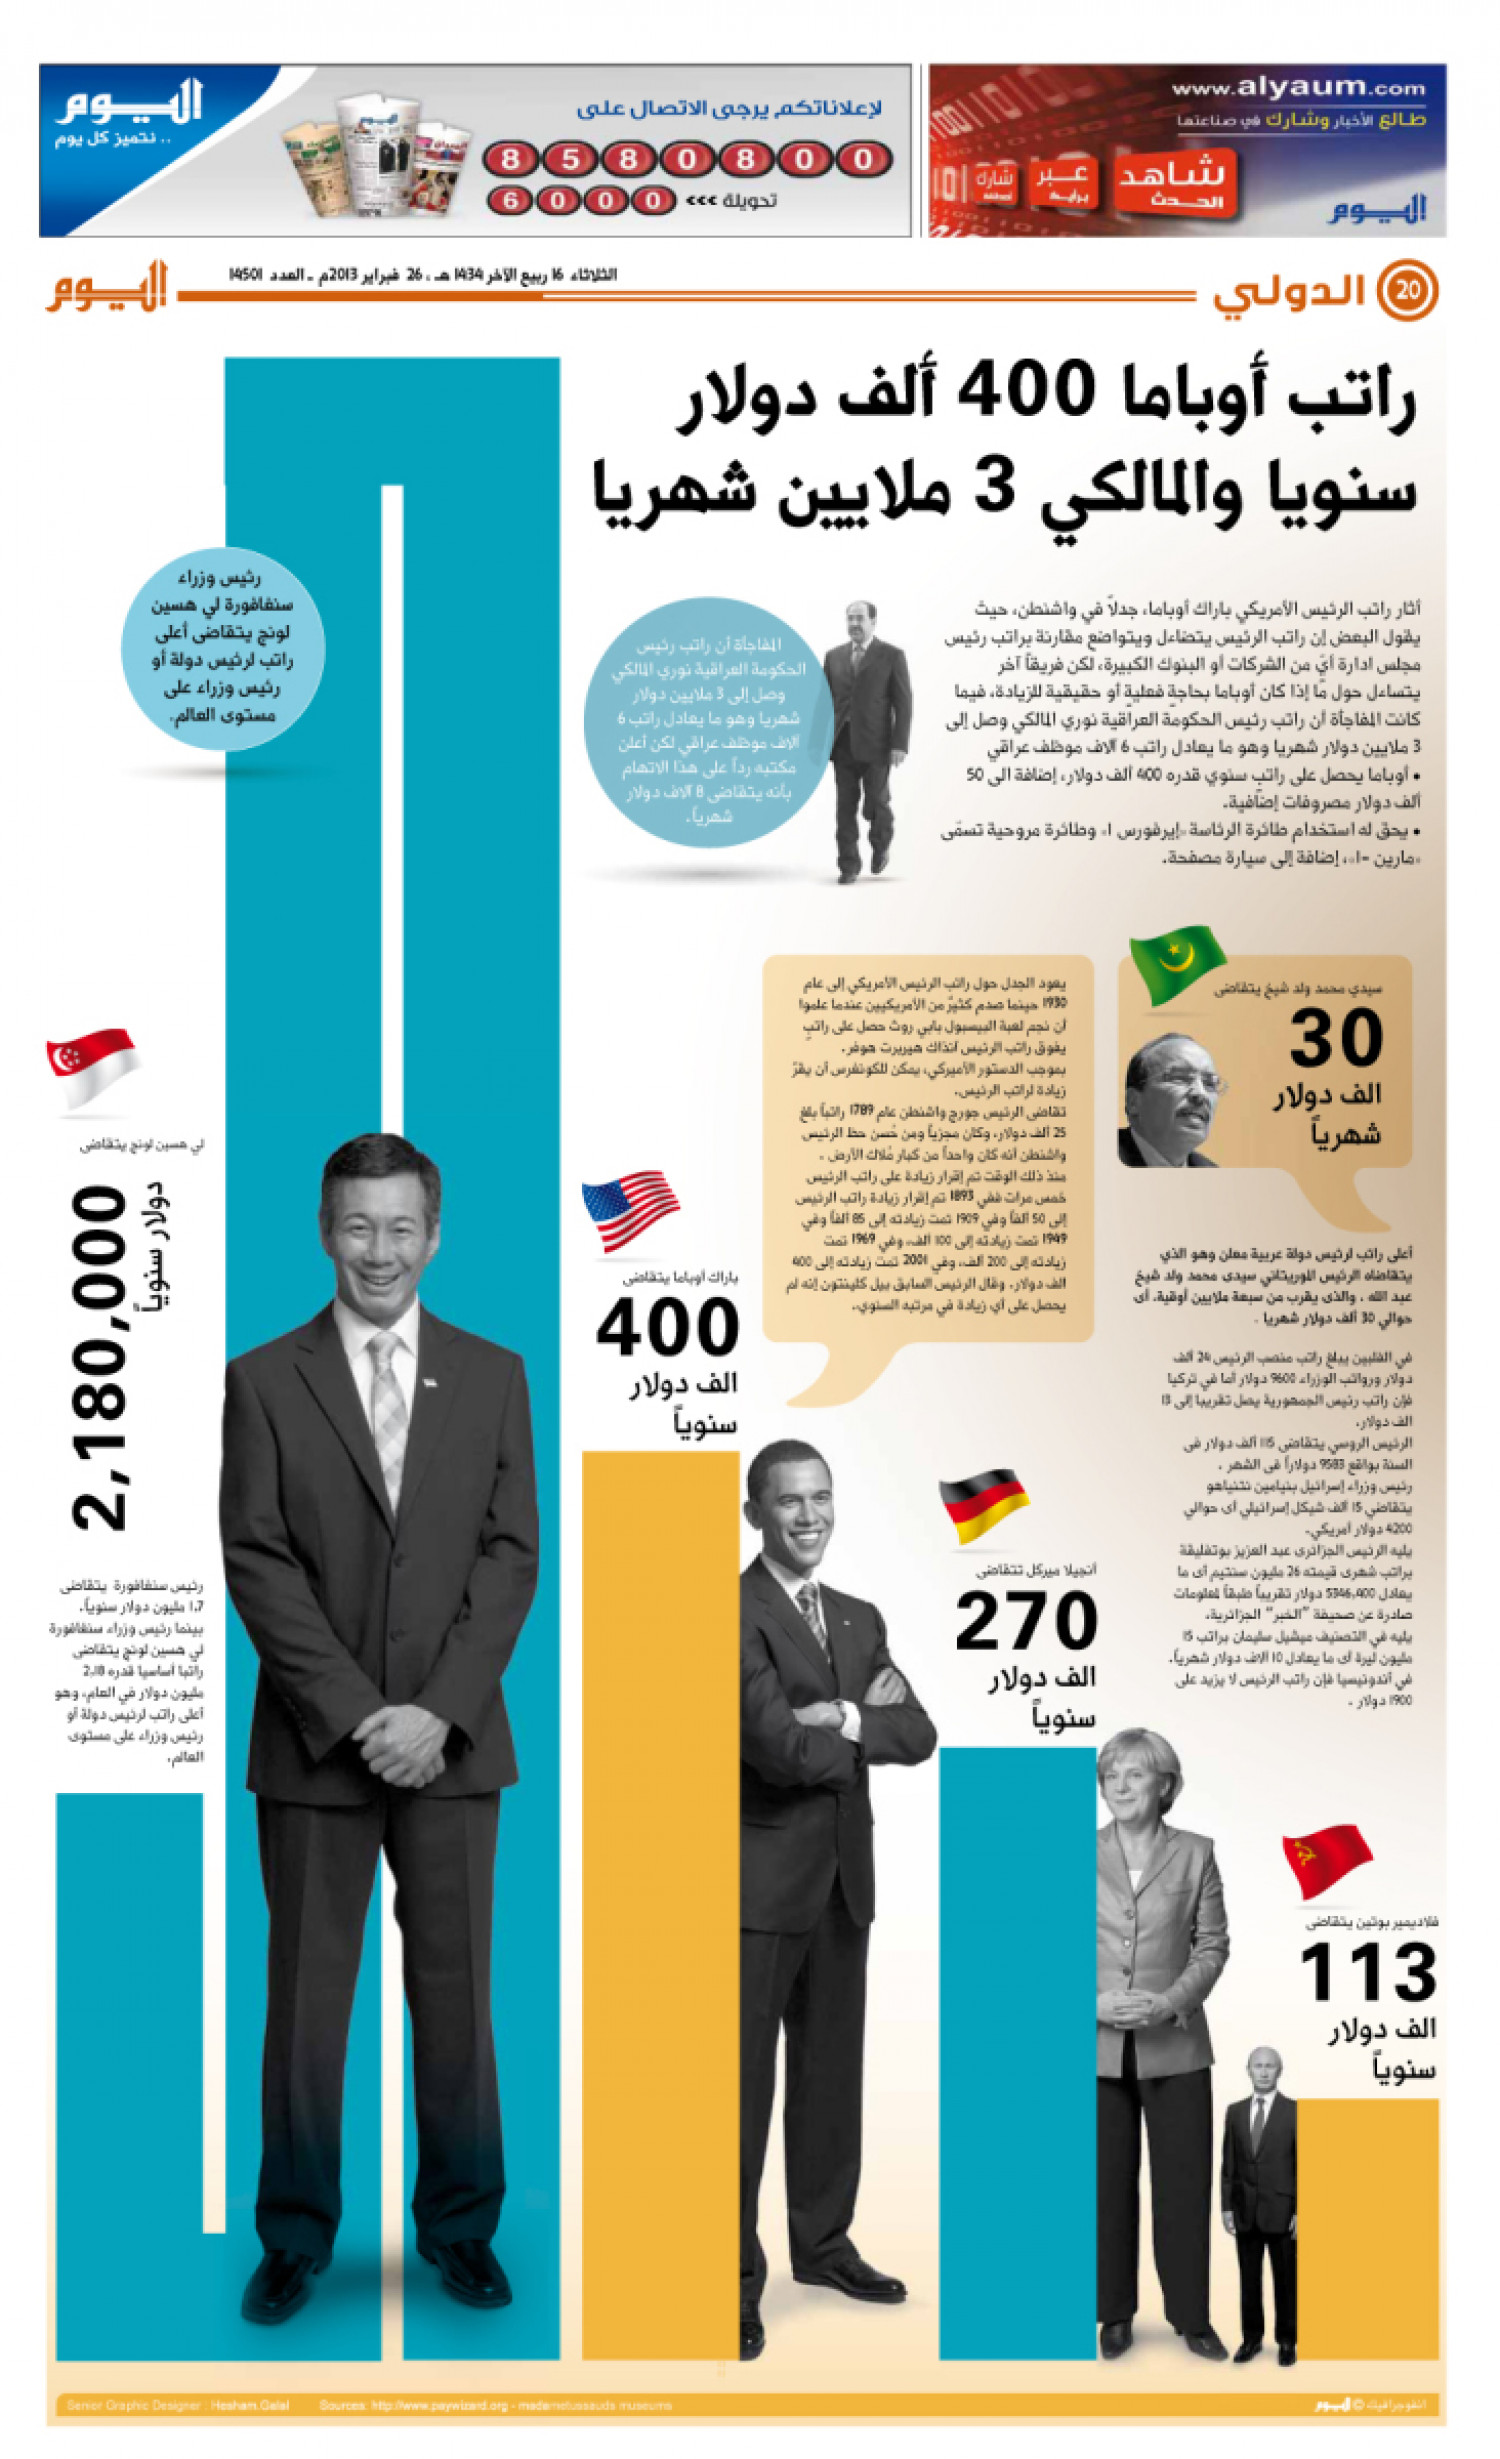 Obama's annual salary 400 000 $ & Nori Almalki earns 3 million monthly Infographic